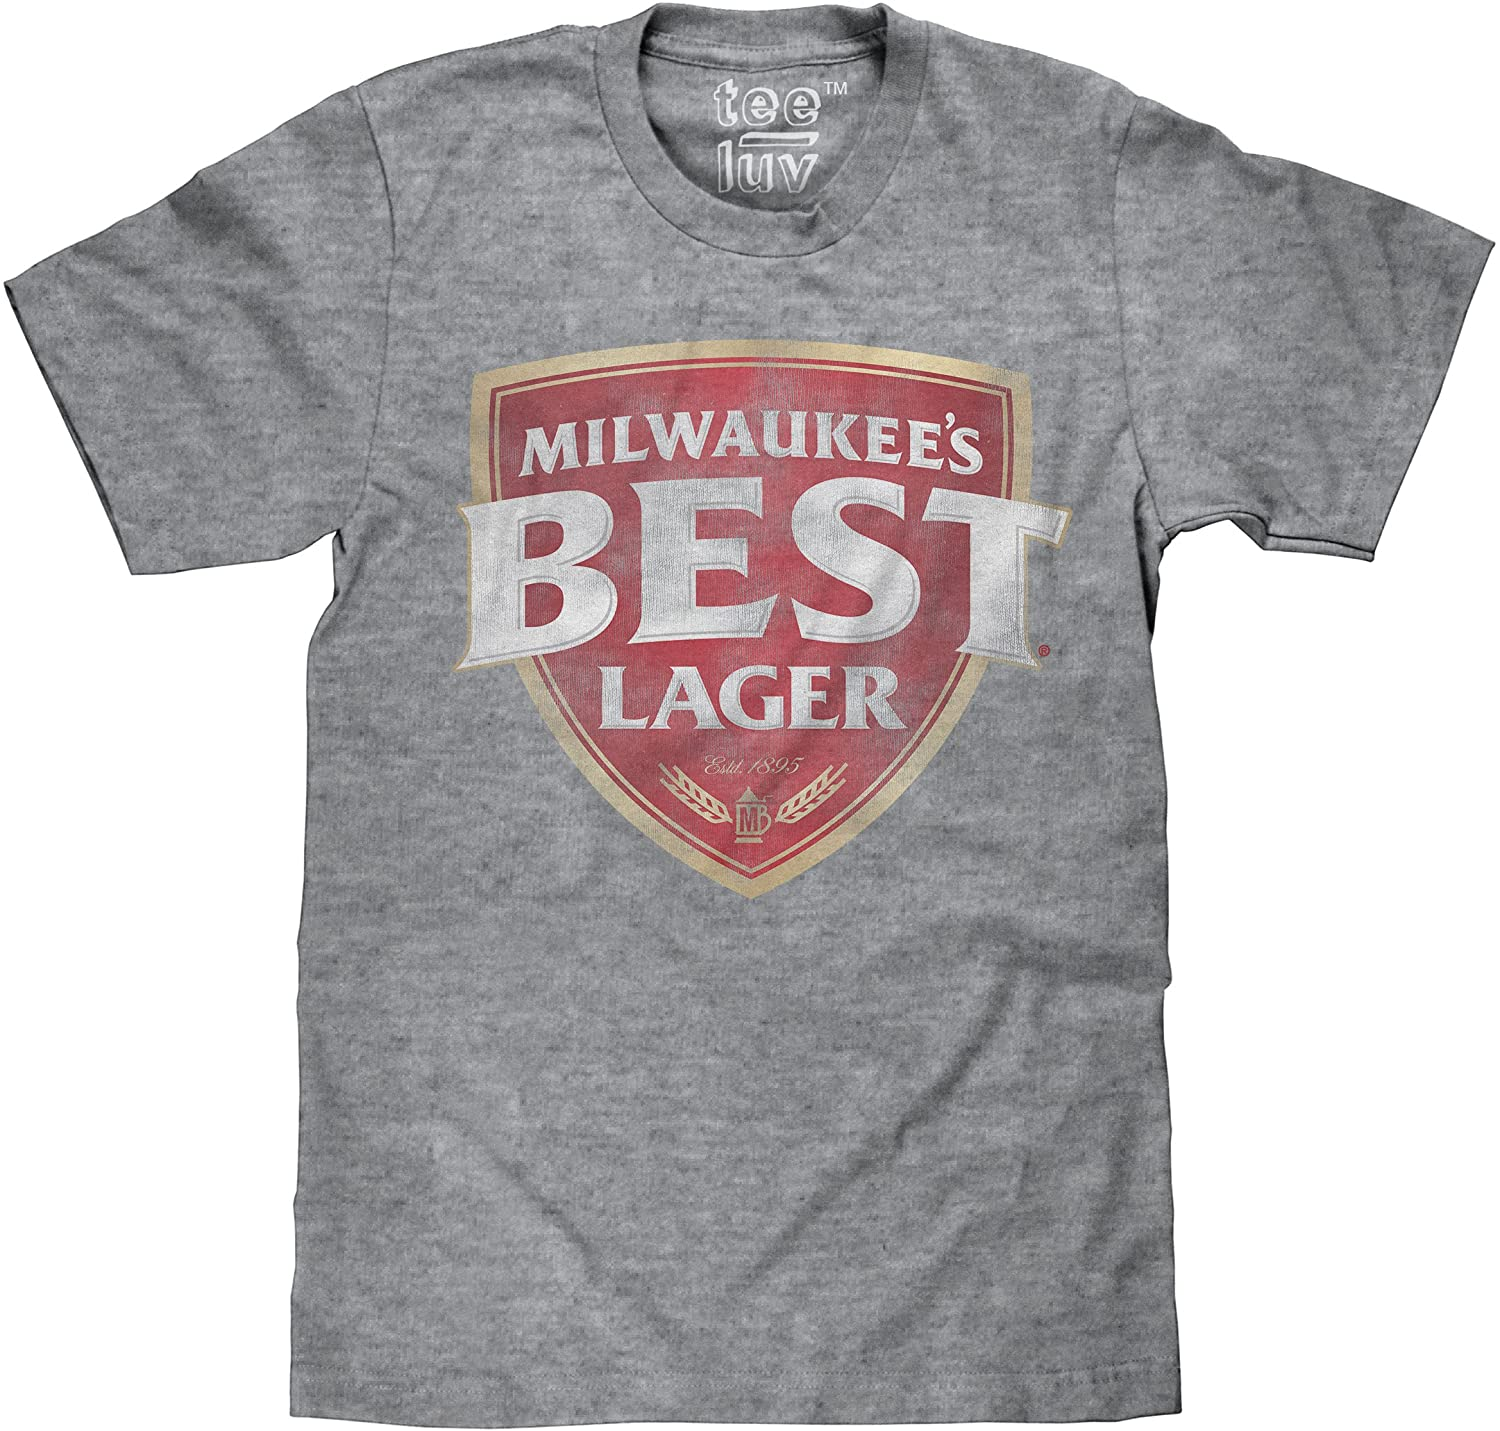 Tee Luv Milwaukee's Best Lager T-Shirt - Retro Milwaukees Beer Logo T-Shirt